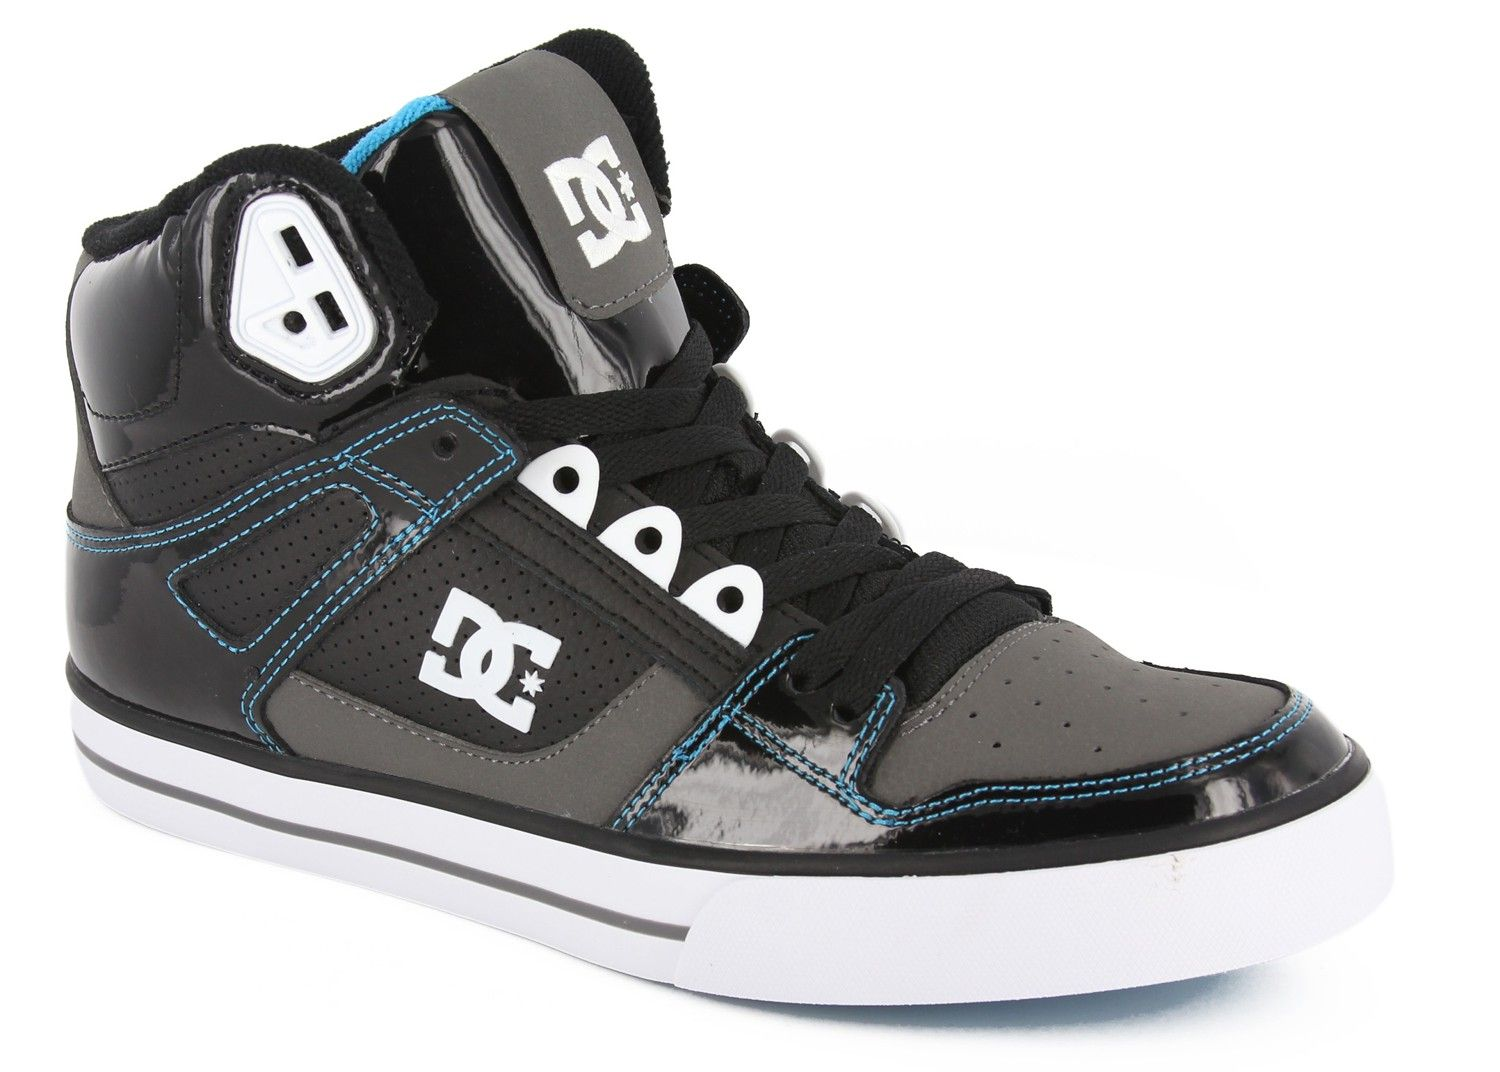 38083bf1f6 DC Shoes Spartan HI WC Skate Shoes